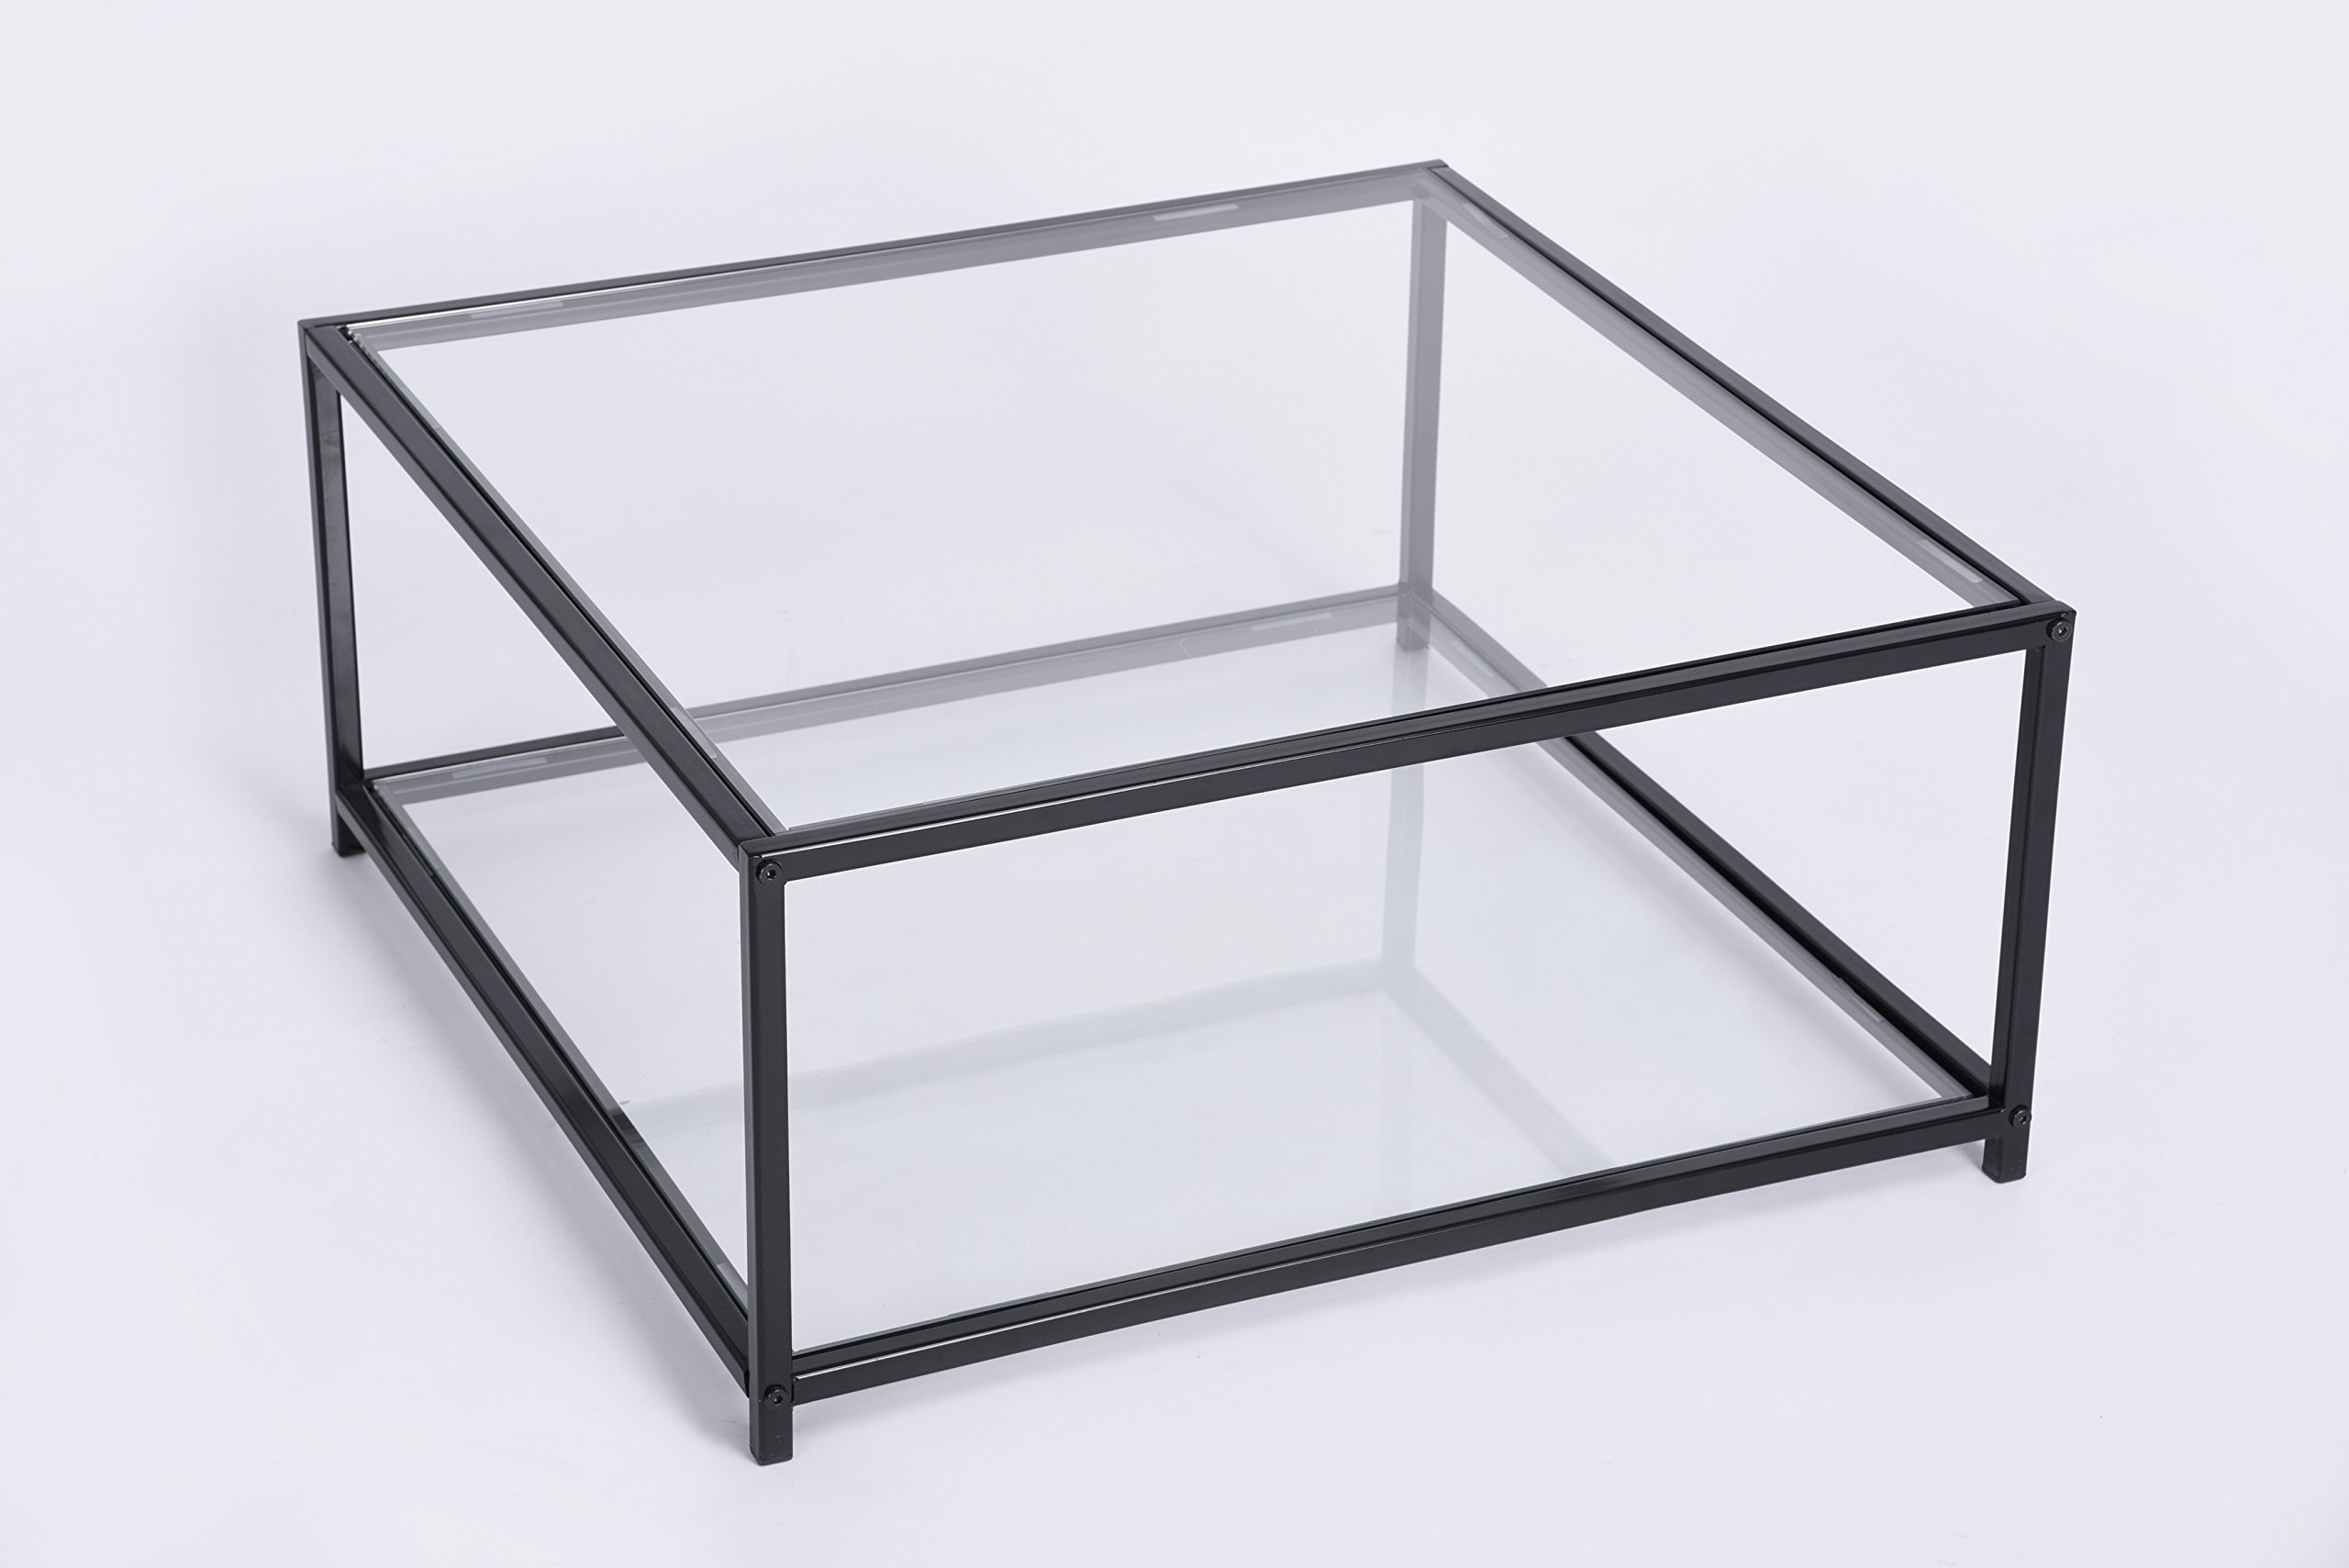 Black Finish Frame Glass Top and Bottom Square Coffee Table by eHomeProducts (Image #1)